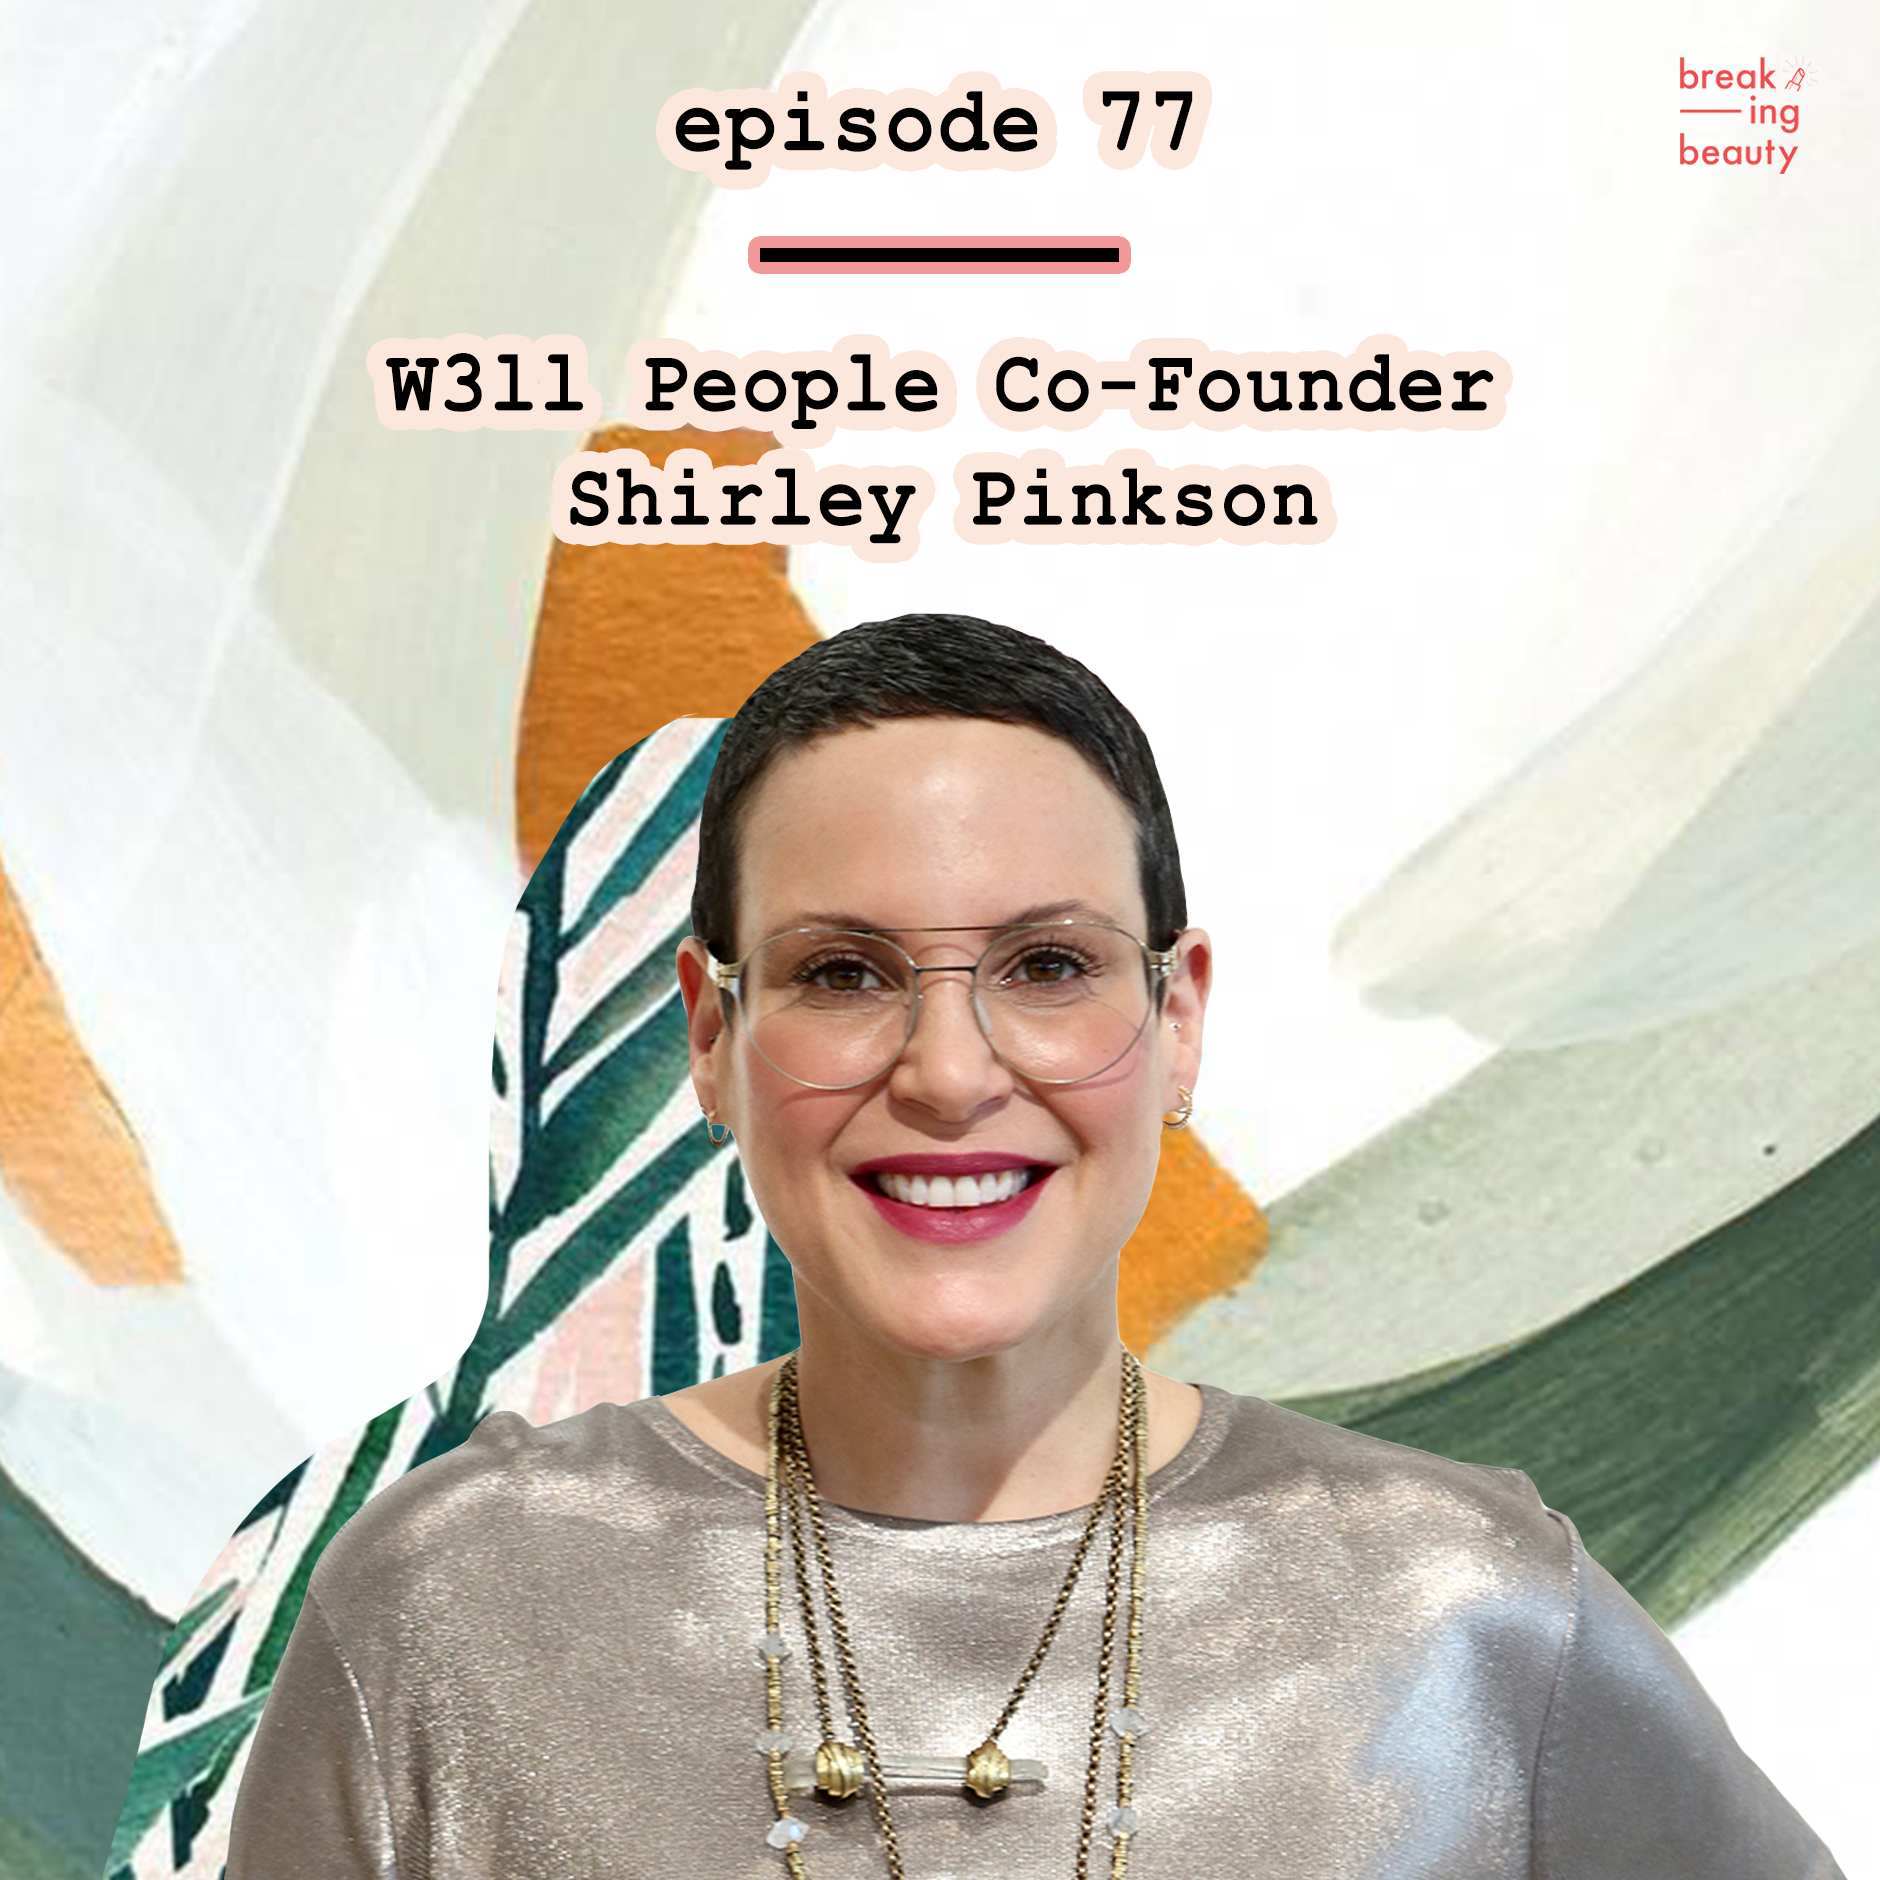 Well People Co-Founder Shirley Pinkson